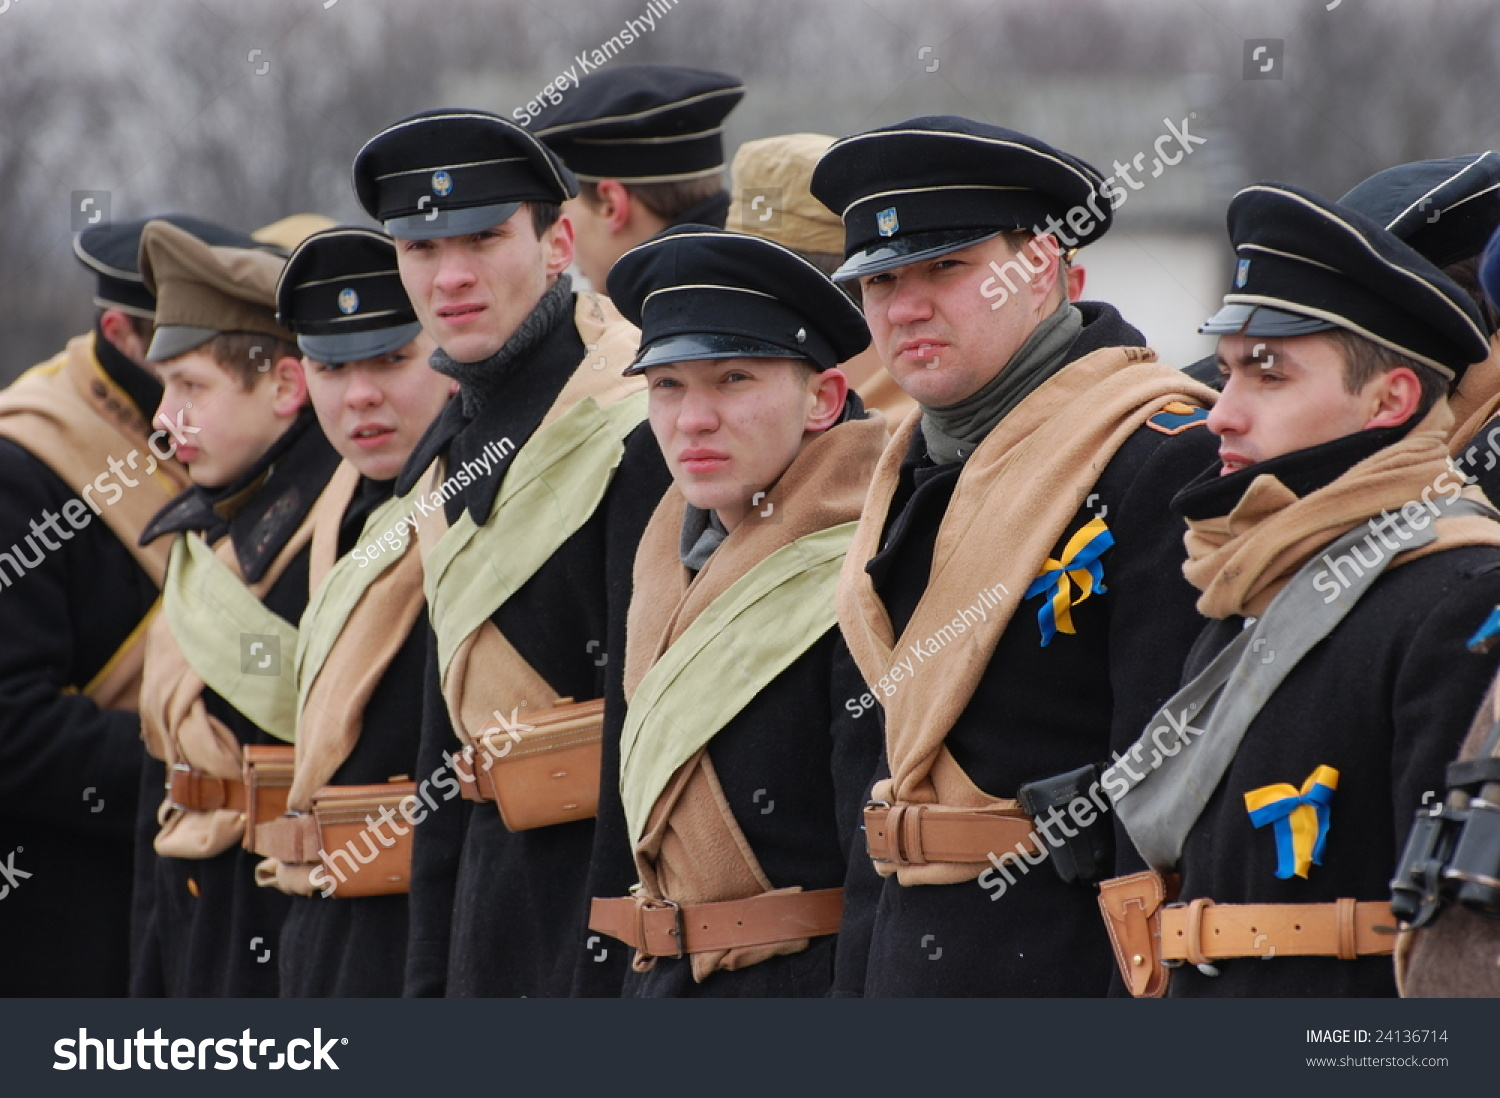 KIEV, UKRAINE - FEB. 2, 2008: Participants in a Russian Historical reenacting group wear 1918 Russian student Civil War uniforms during their  group meeting on February 2, 2008 in Kiev, Ukraine.